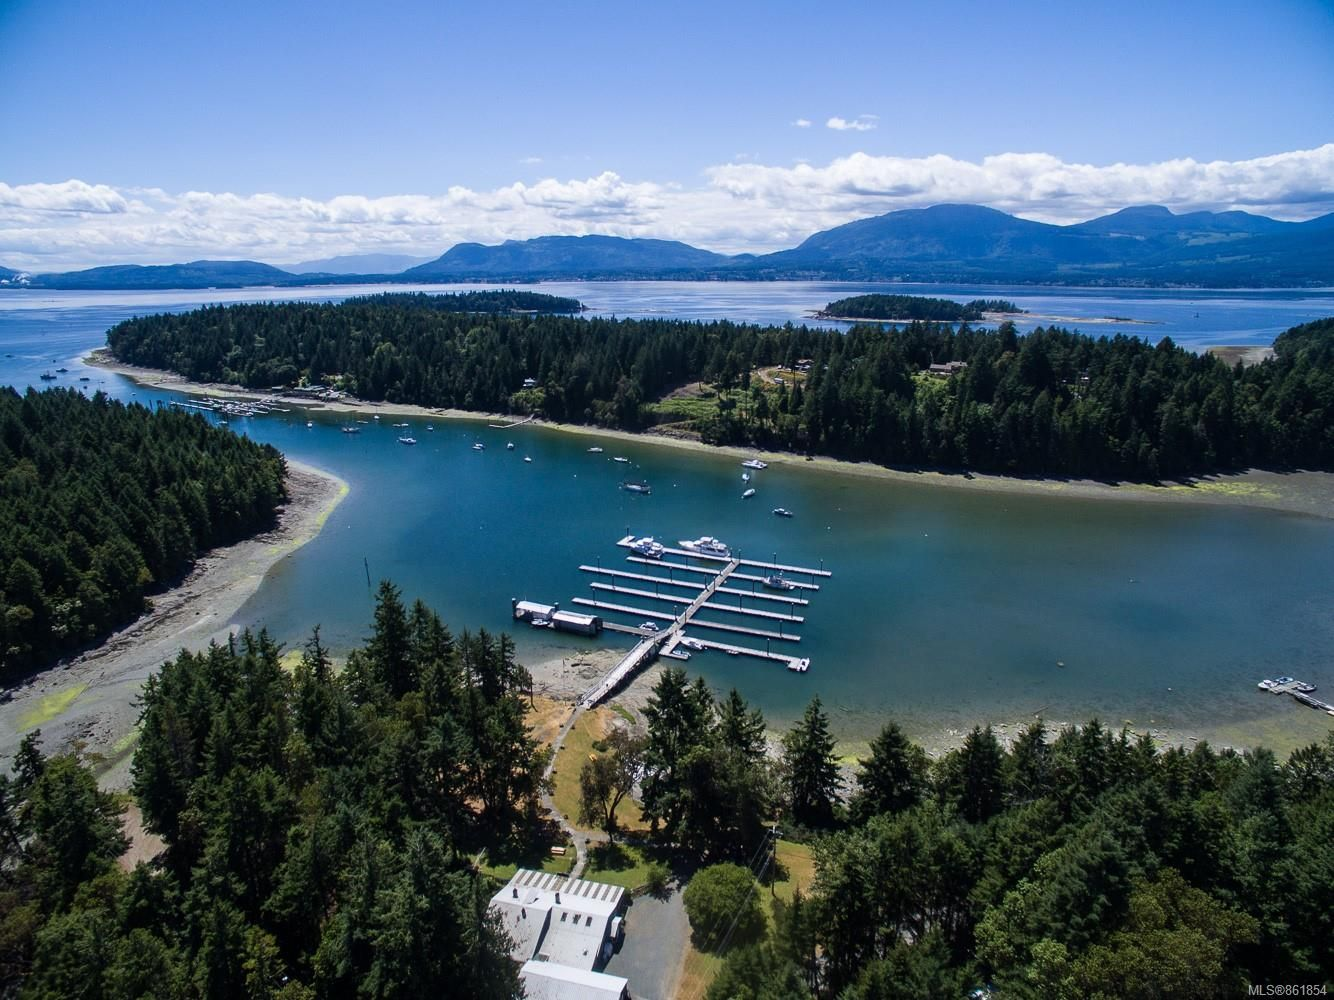 Main Photo: 76 Marina Dr in : Isl Thetis Island Other for sale (Islands)  : MLS®# 861854